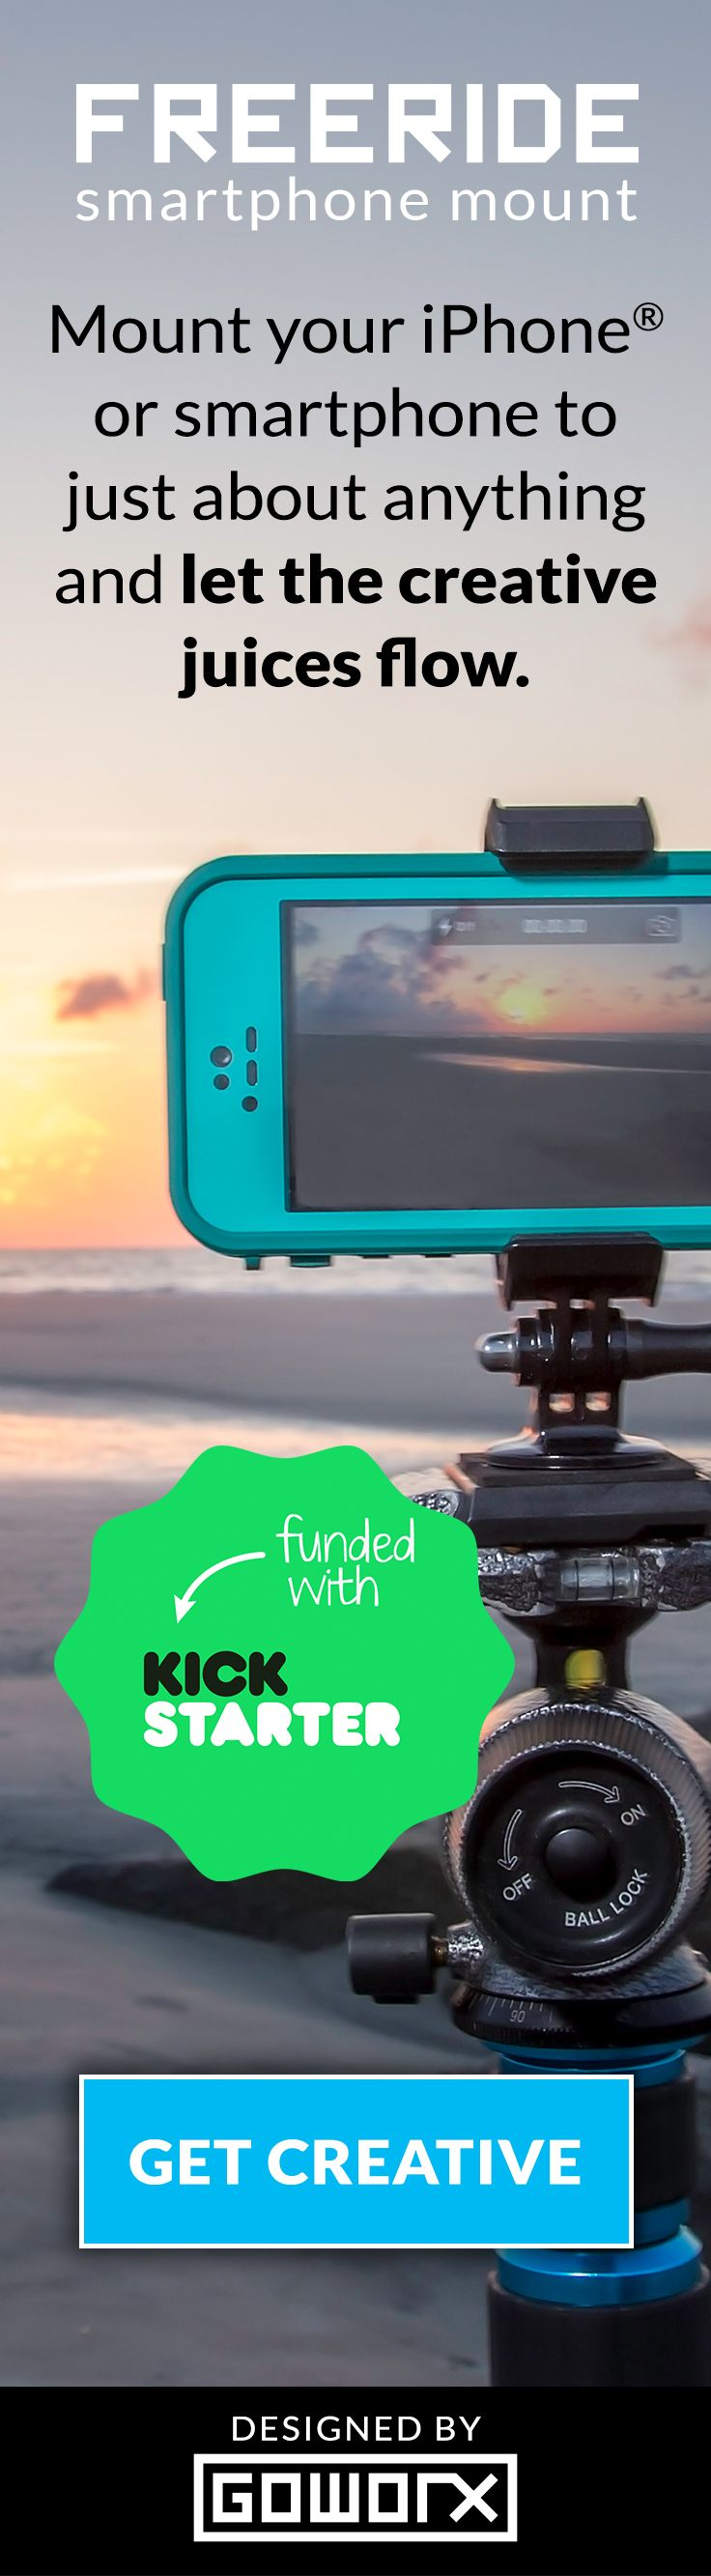 [Calling All Camera Lovers] Are you ready to unlock your phone's creative potential? Grab a FreeRide! Works with thousands of GoPro® Mounts, Tripods, and Action Cam Mounts. Now Available: https://freeridemount.com